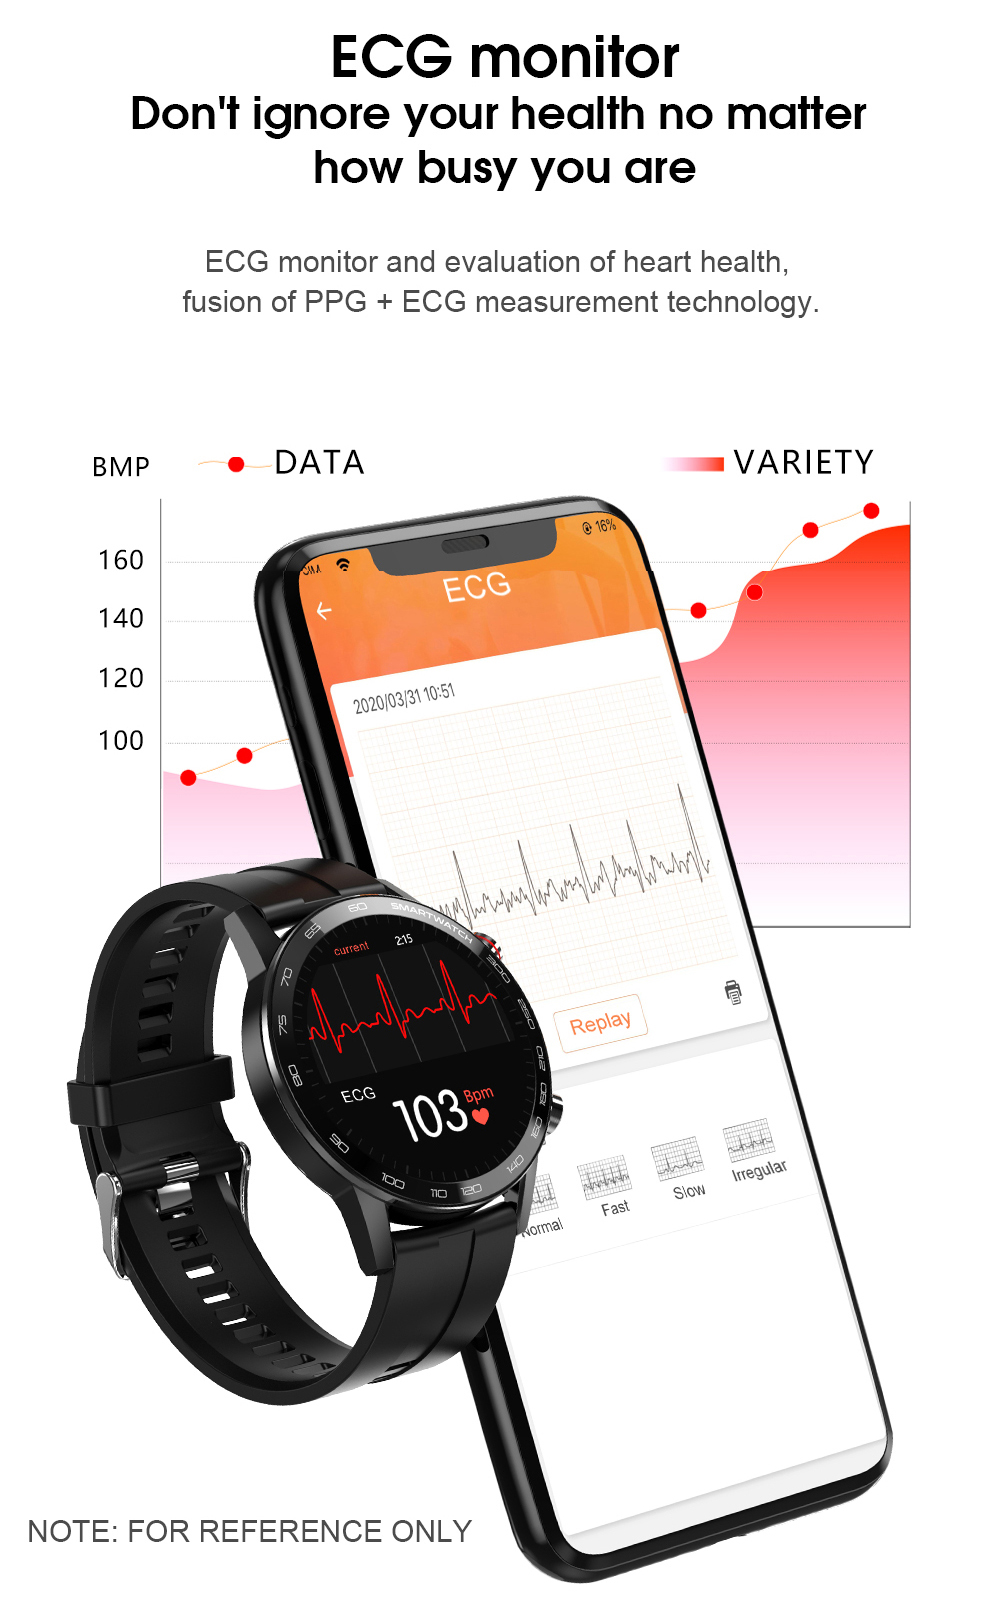 H4aec3a6c11584e749ff4a7b205822238q Reloj Inteligente Hombre Smartwatch Ecg Ppg IP68 Smarthwatch Men Full Touch Smart Watch 2020 For Huawei Xiaomi Android Apple IOS